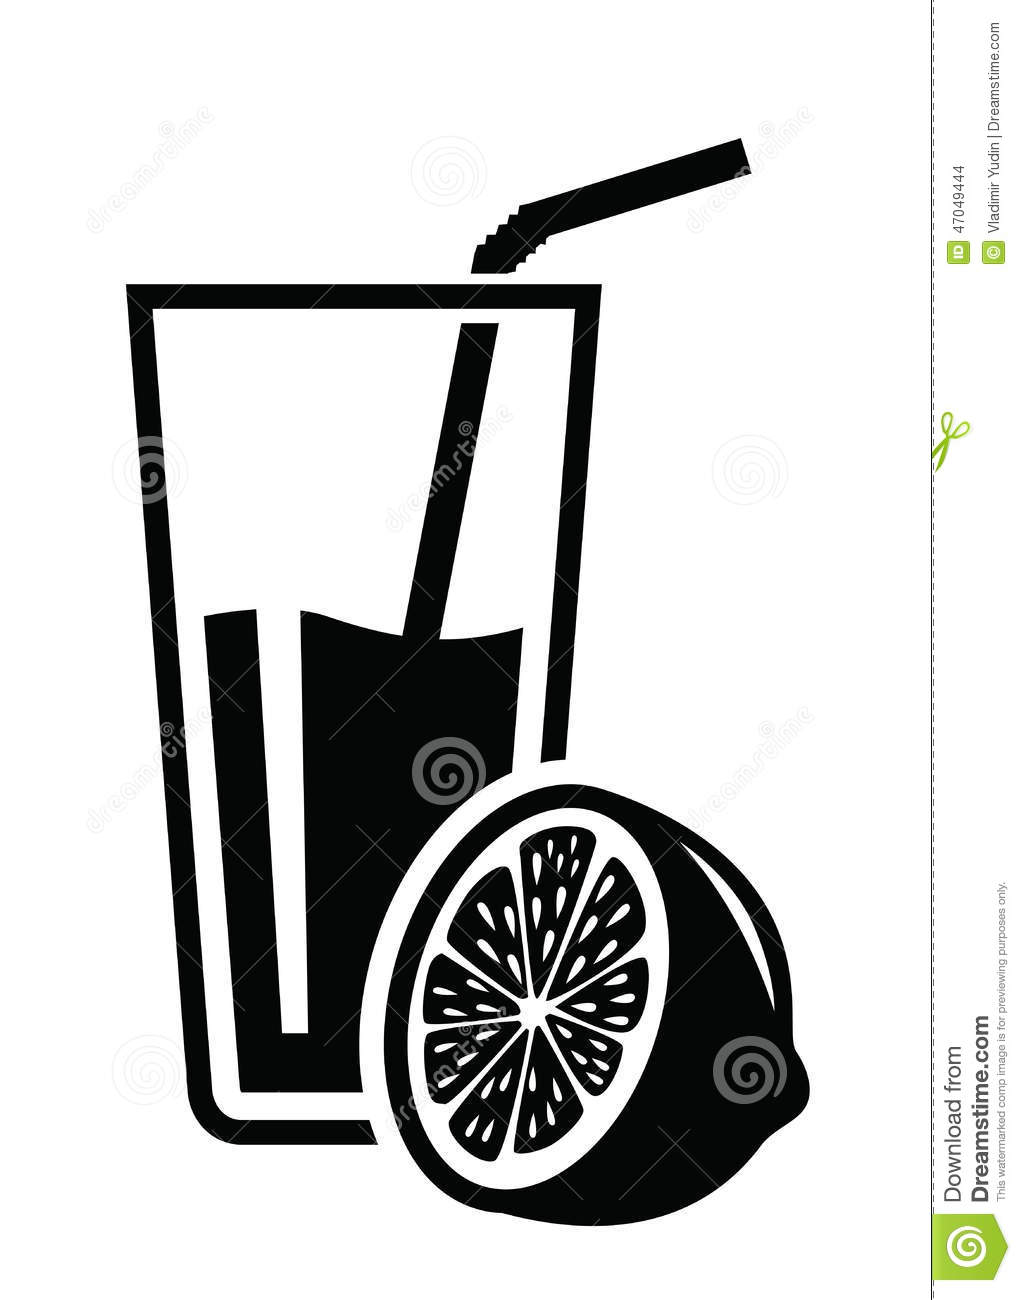 Juice Icon Stock Vector - Image: 47049444